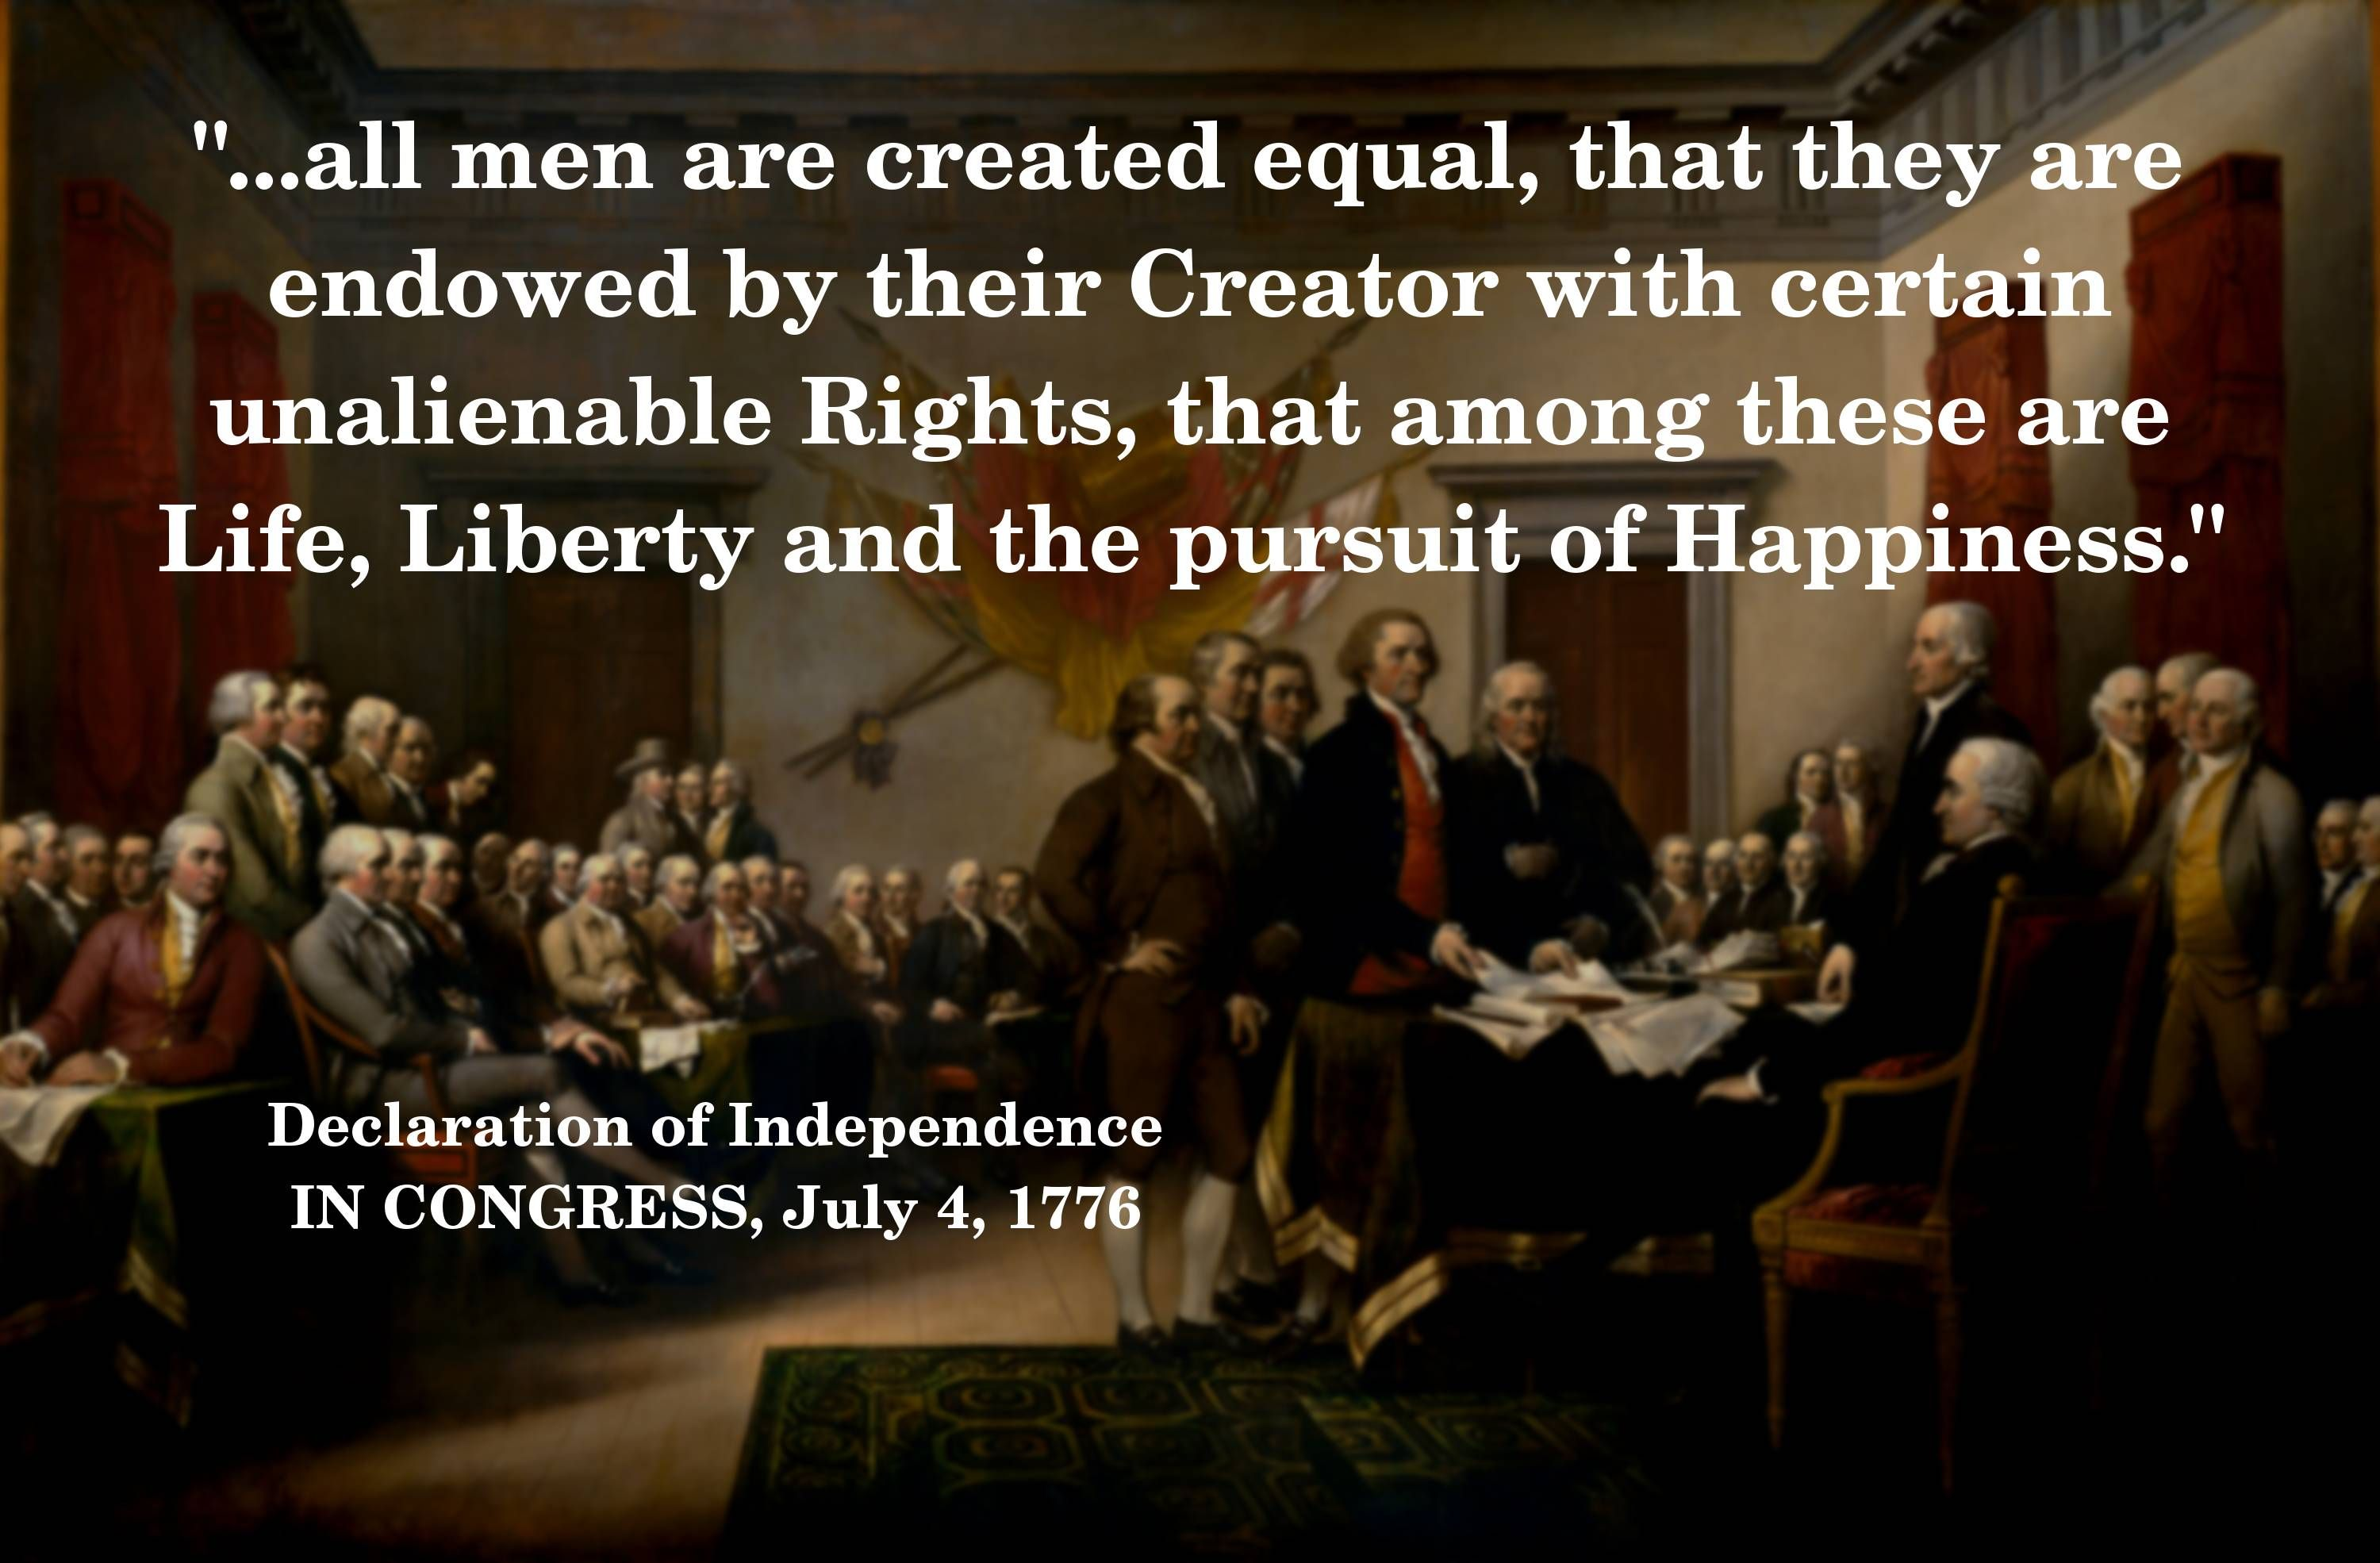 United States Declaration of Independence | Declaration of ...